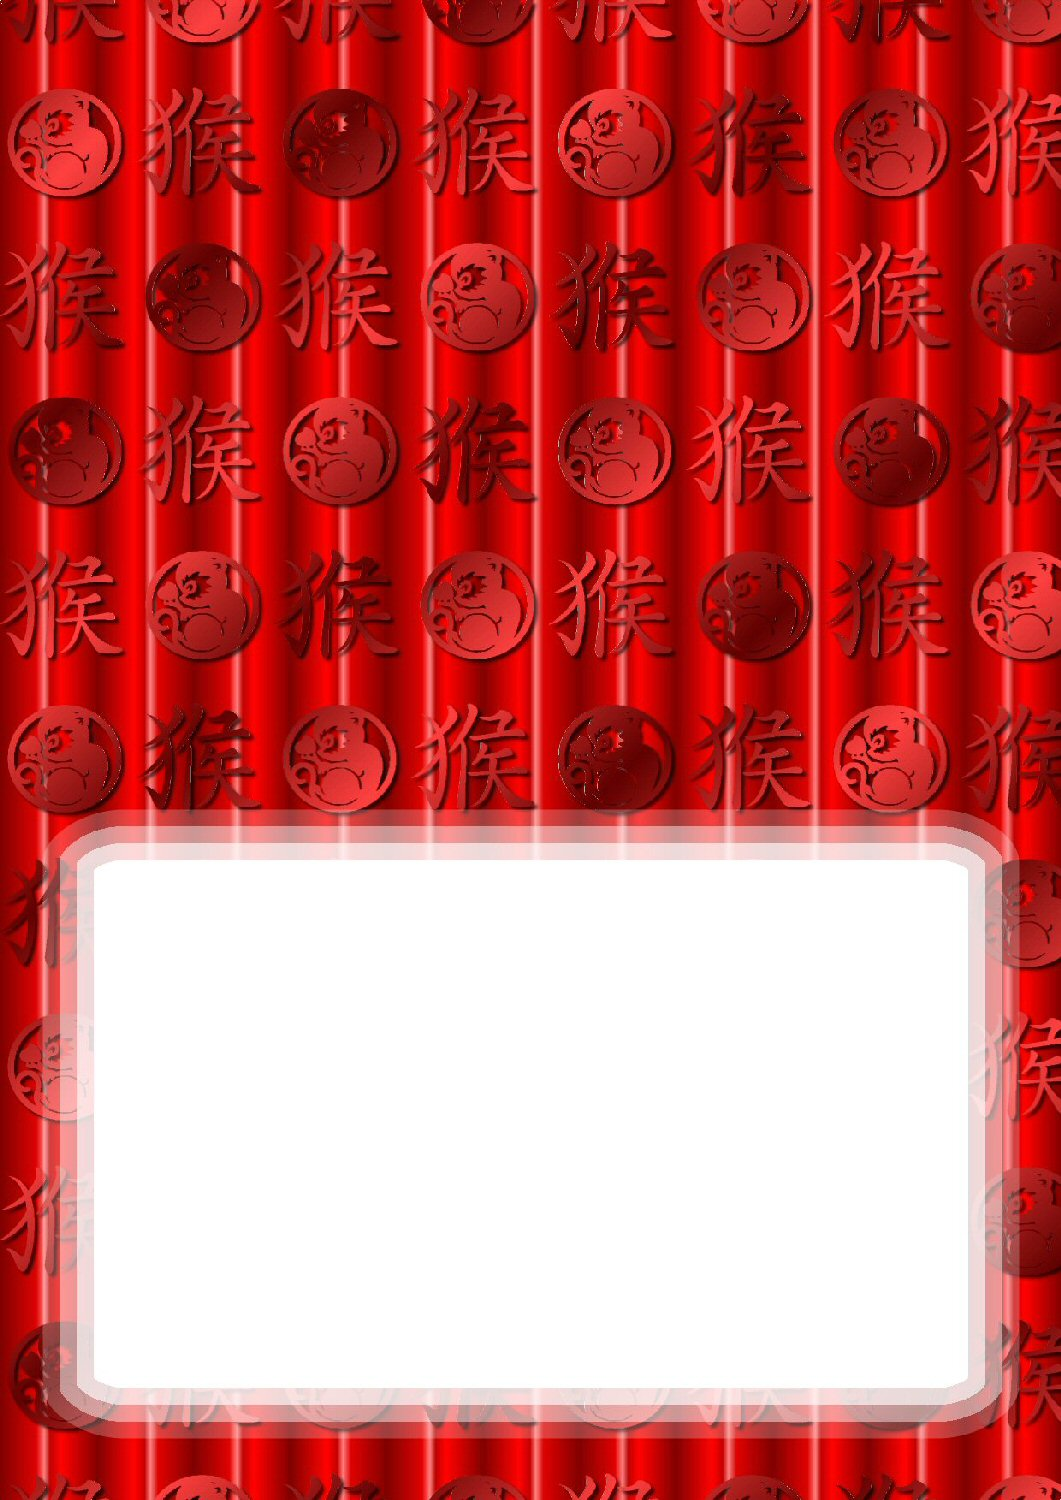 Chinese new year essay form 1